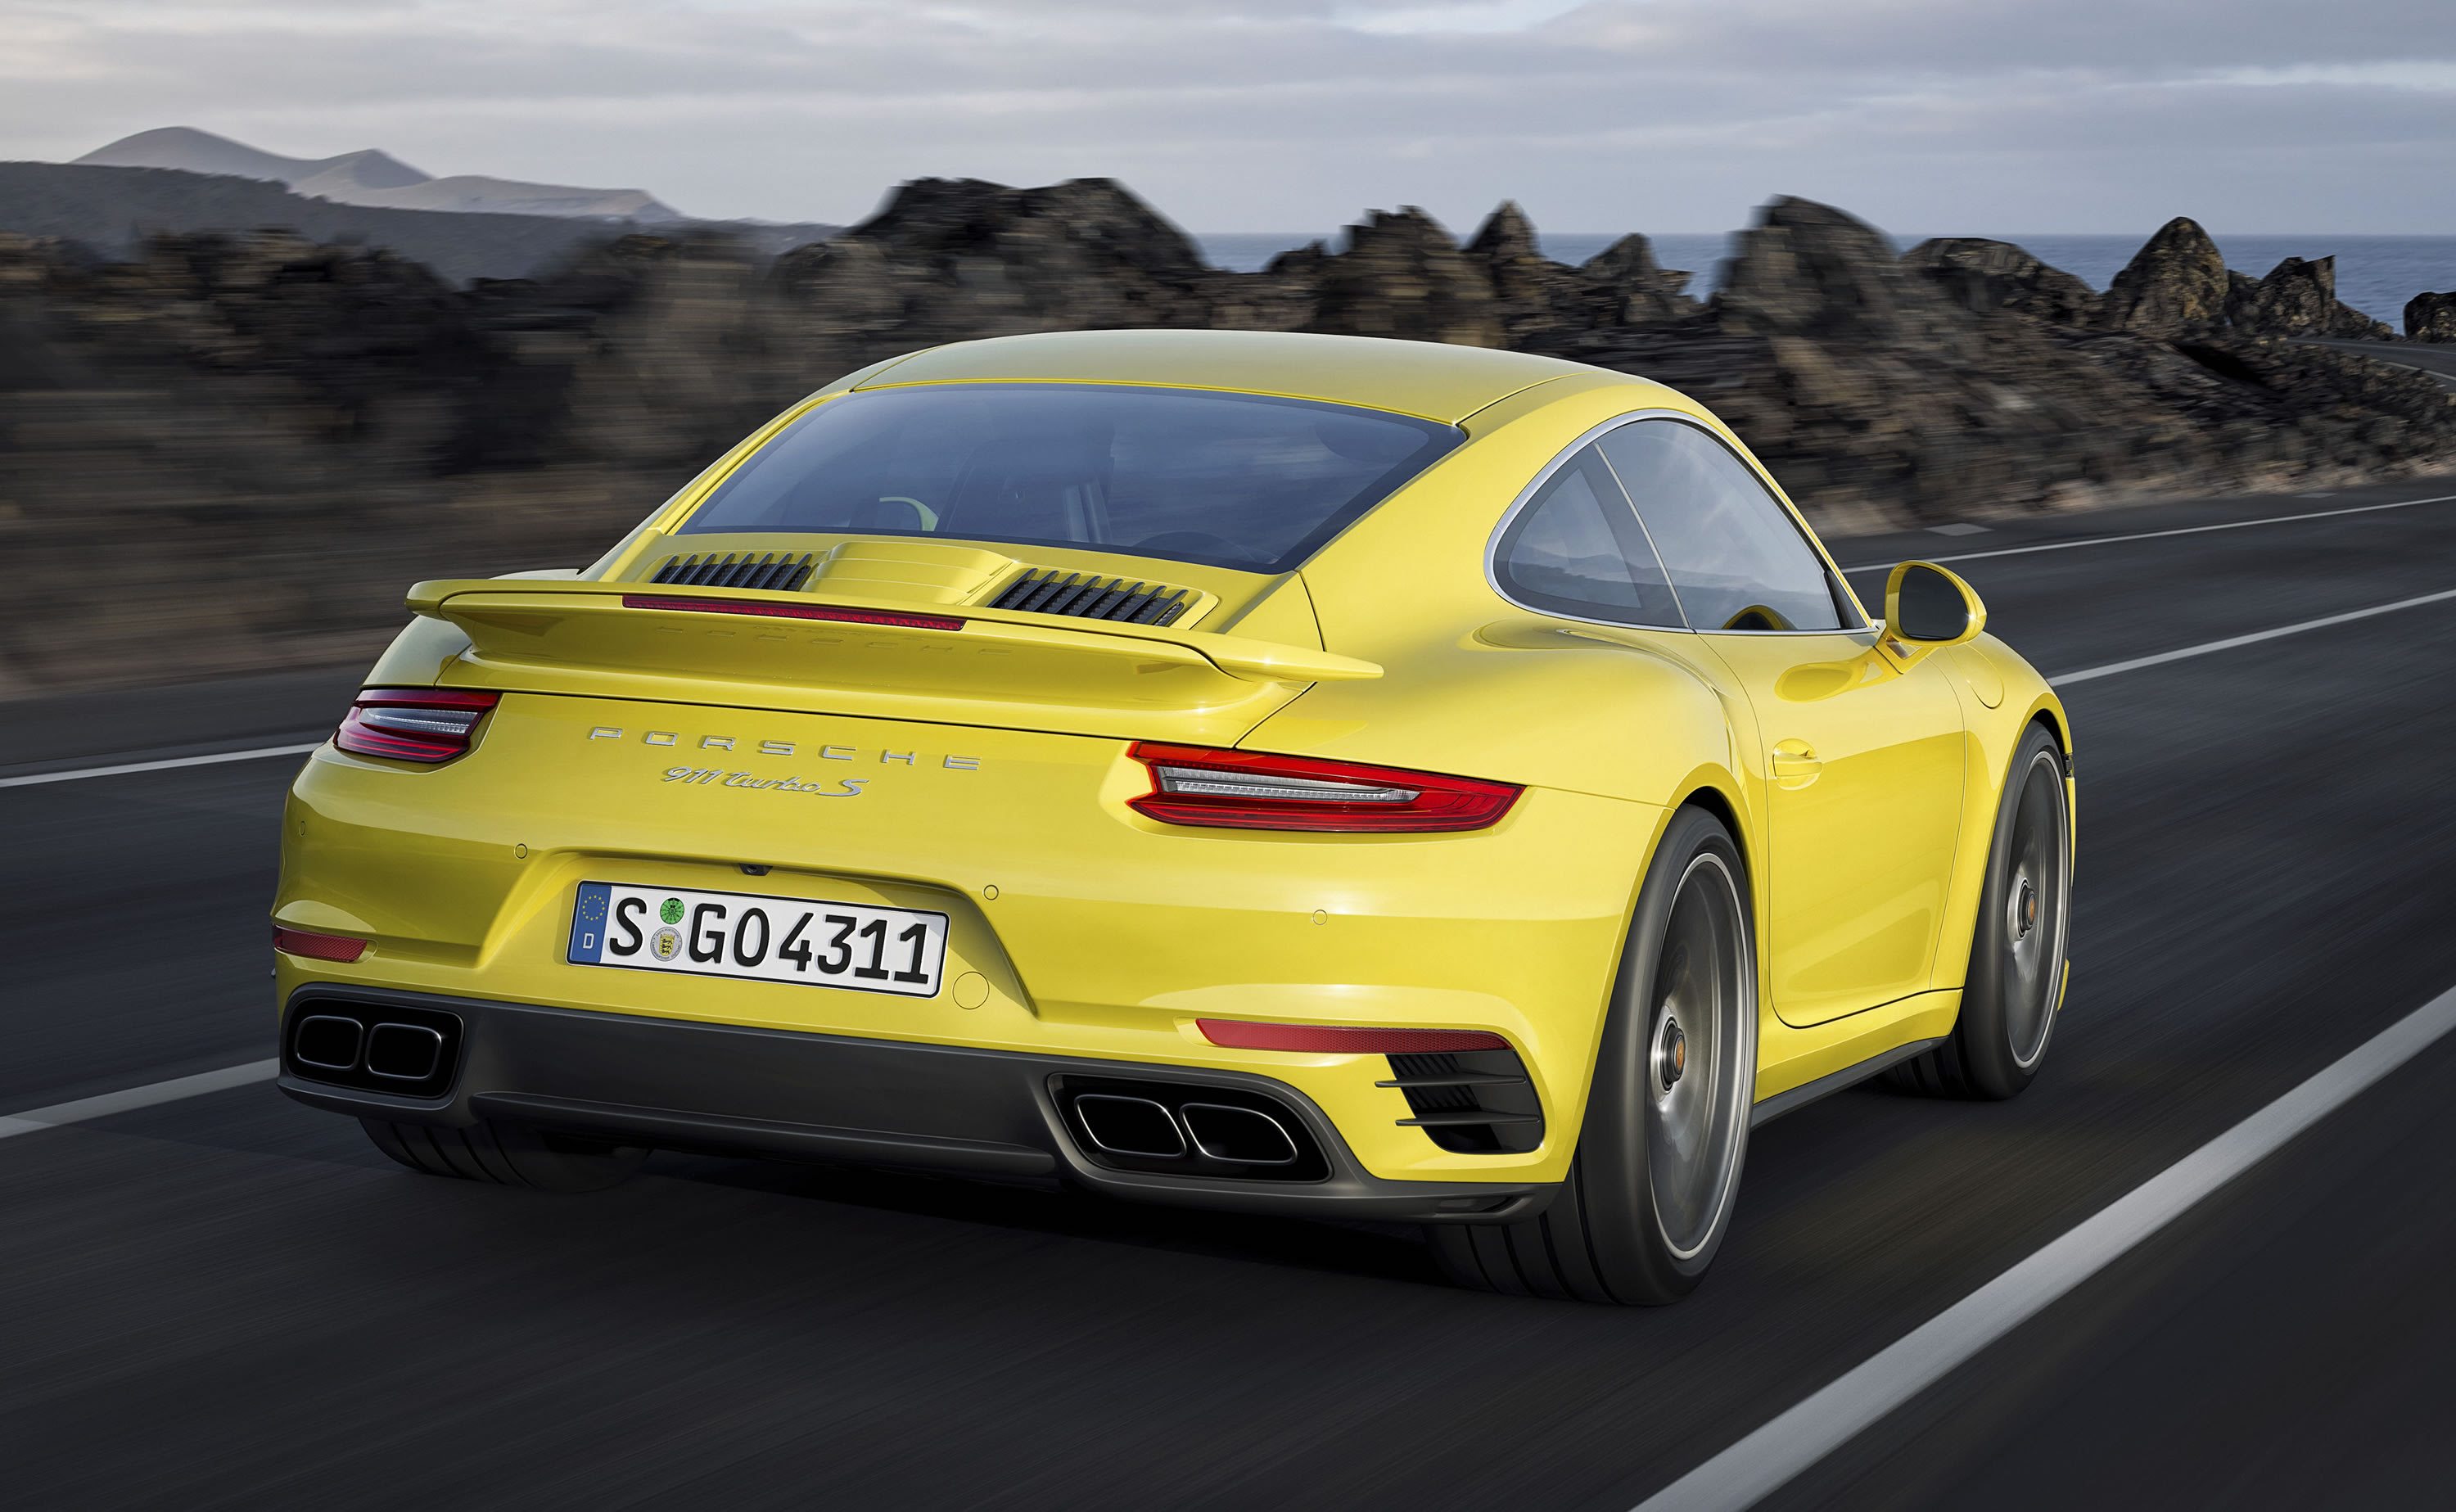 2017 Porsche 911 Turbo S Photos, Specs and Review - RS